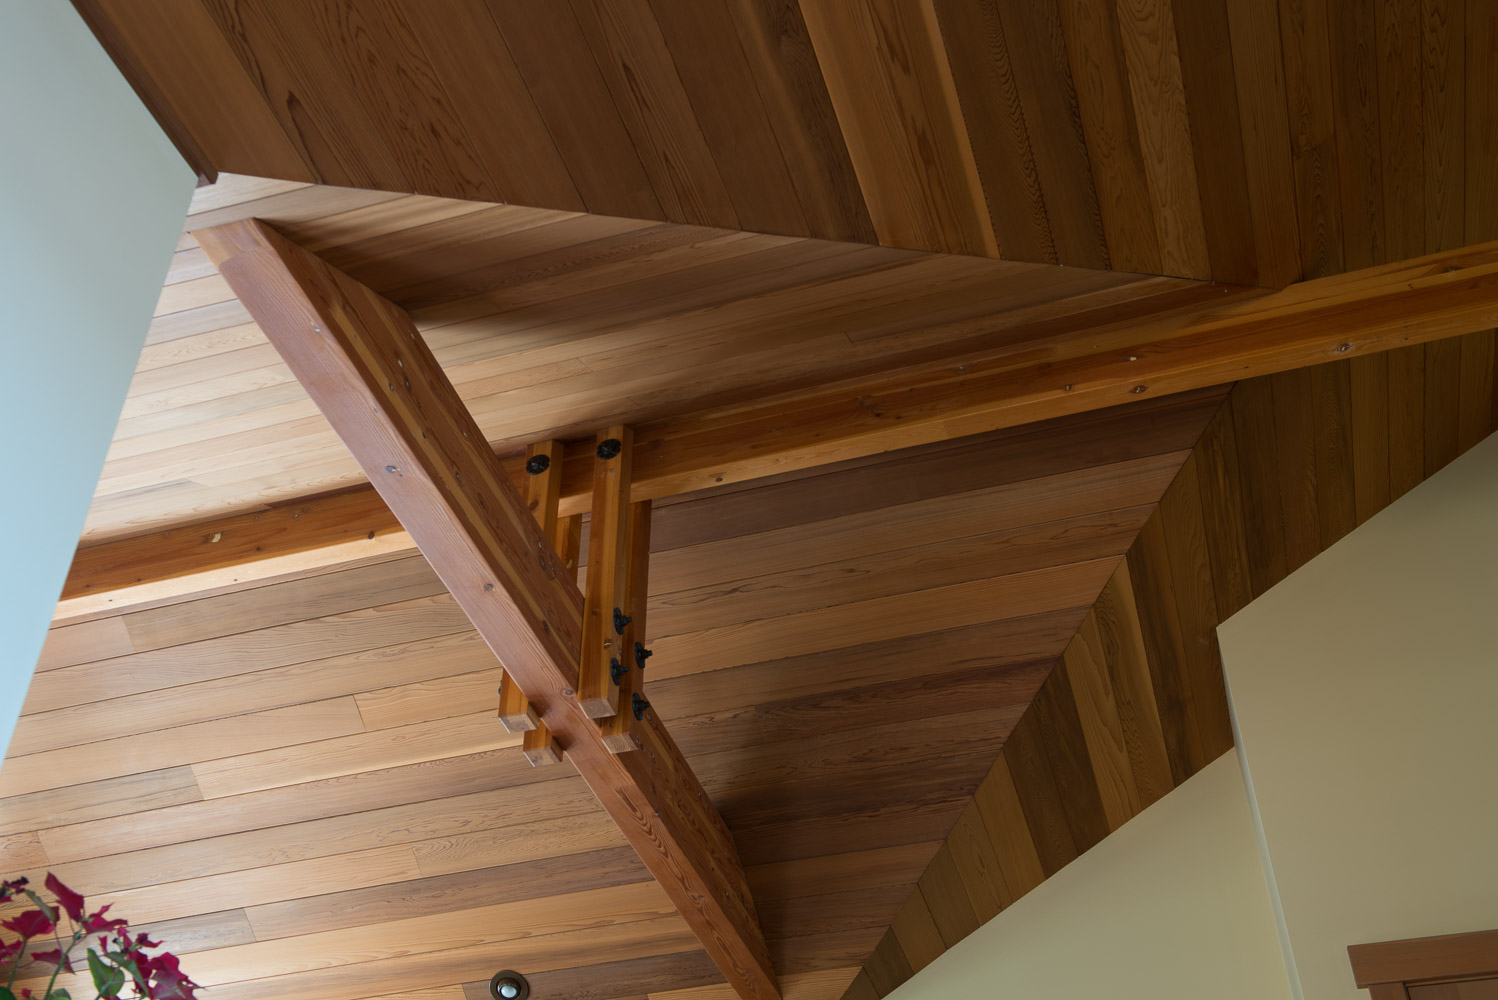 Fauntleroy Cove Fir Ceiling by Vornbrock & Son's Construction